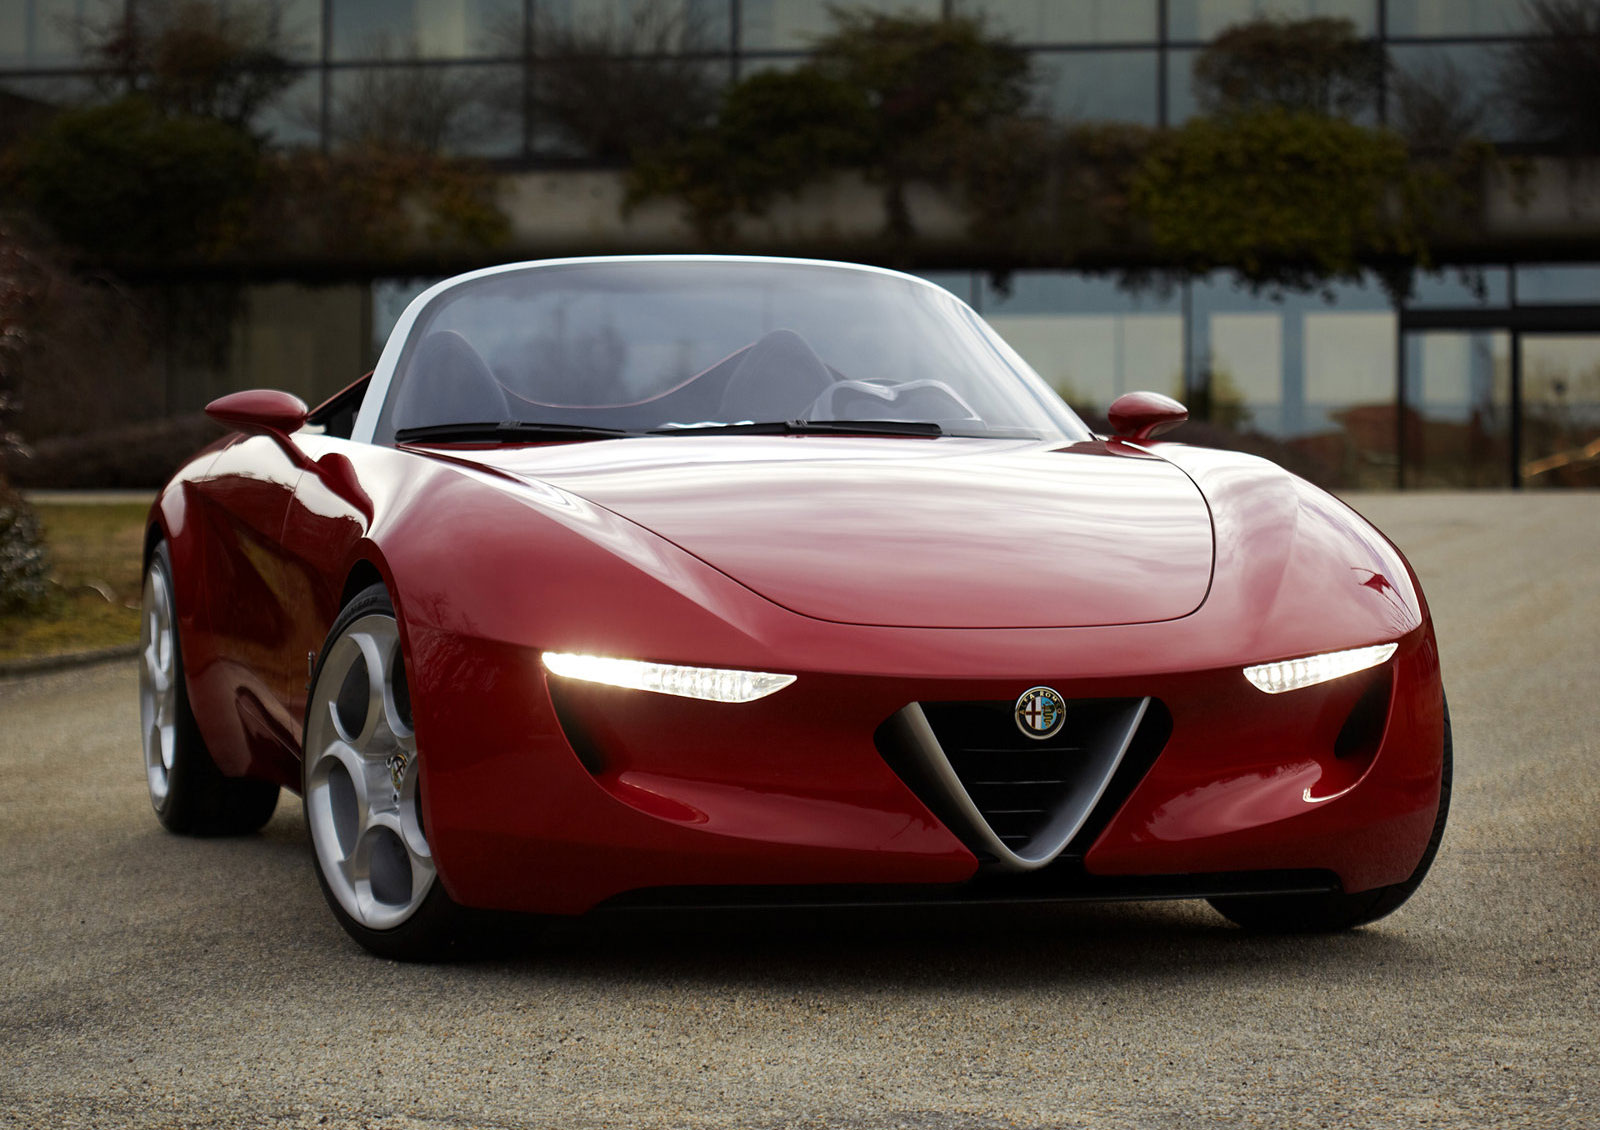 2011 Alfa Romeo 2uettottanta Concept Car To Ride Modifications Specifications Prices And Image Sell Buy Cars New Used The Is A